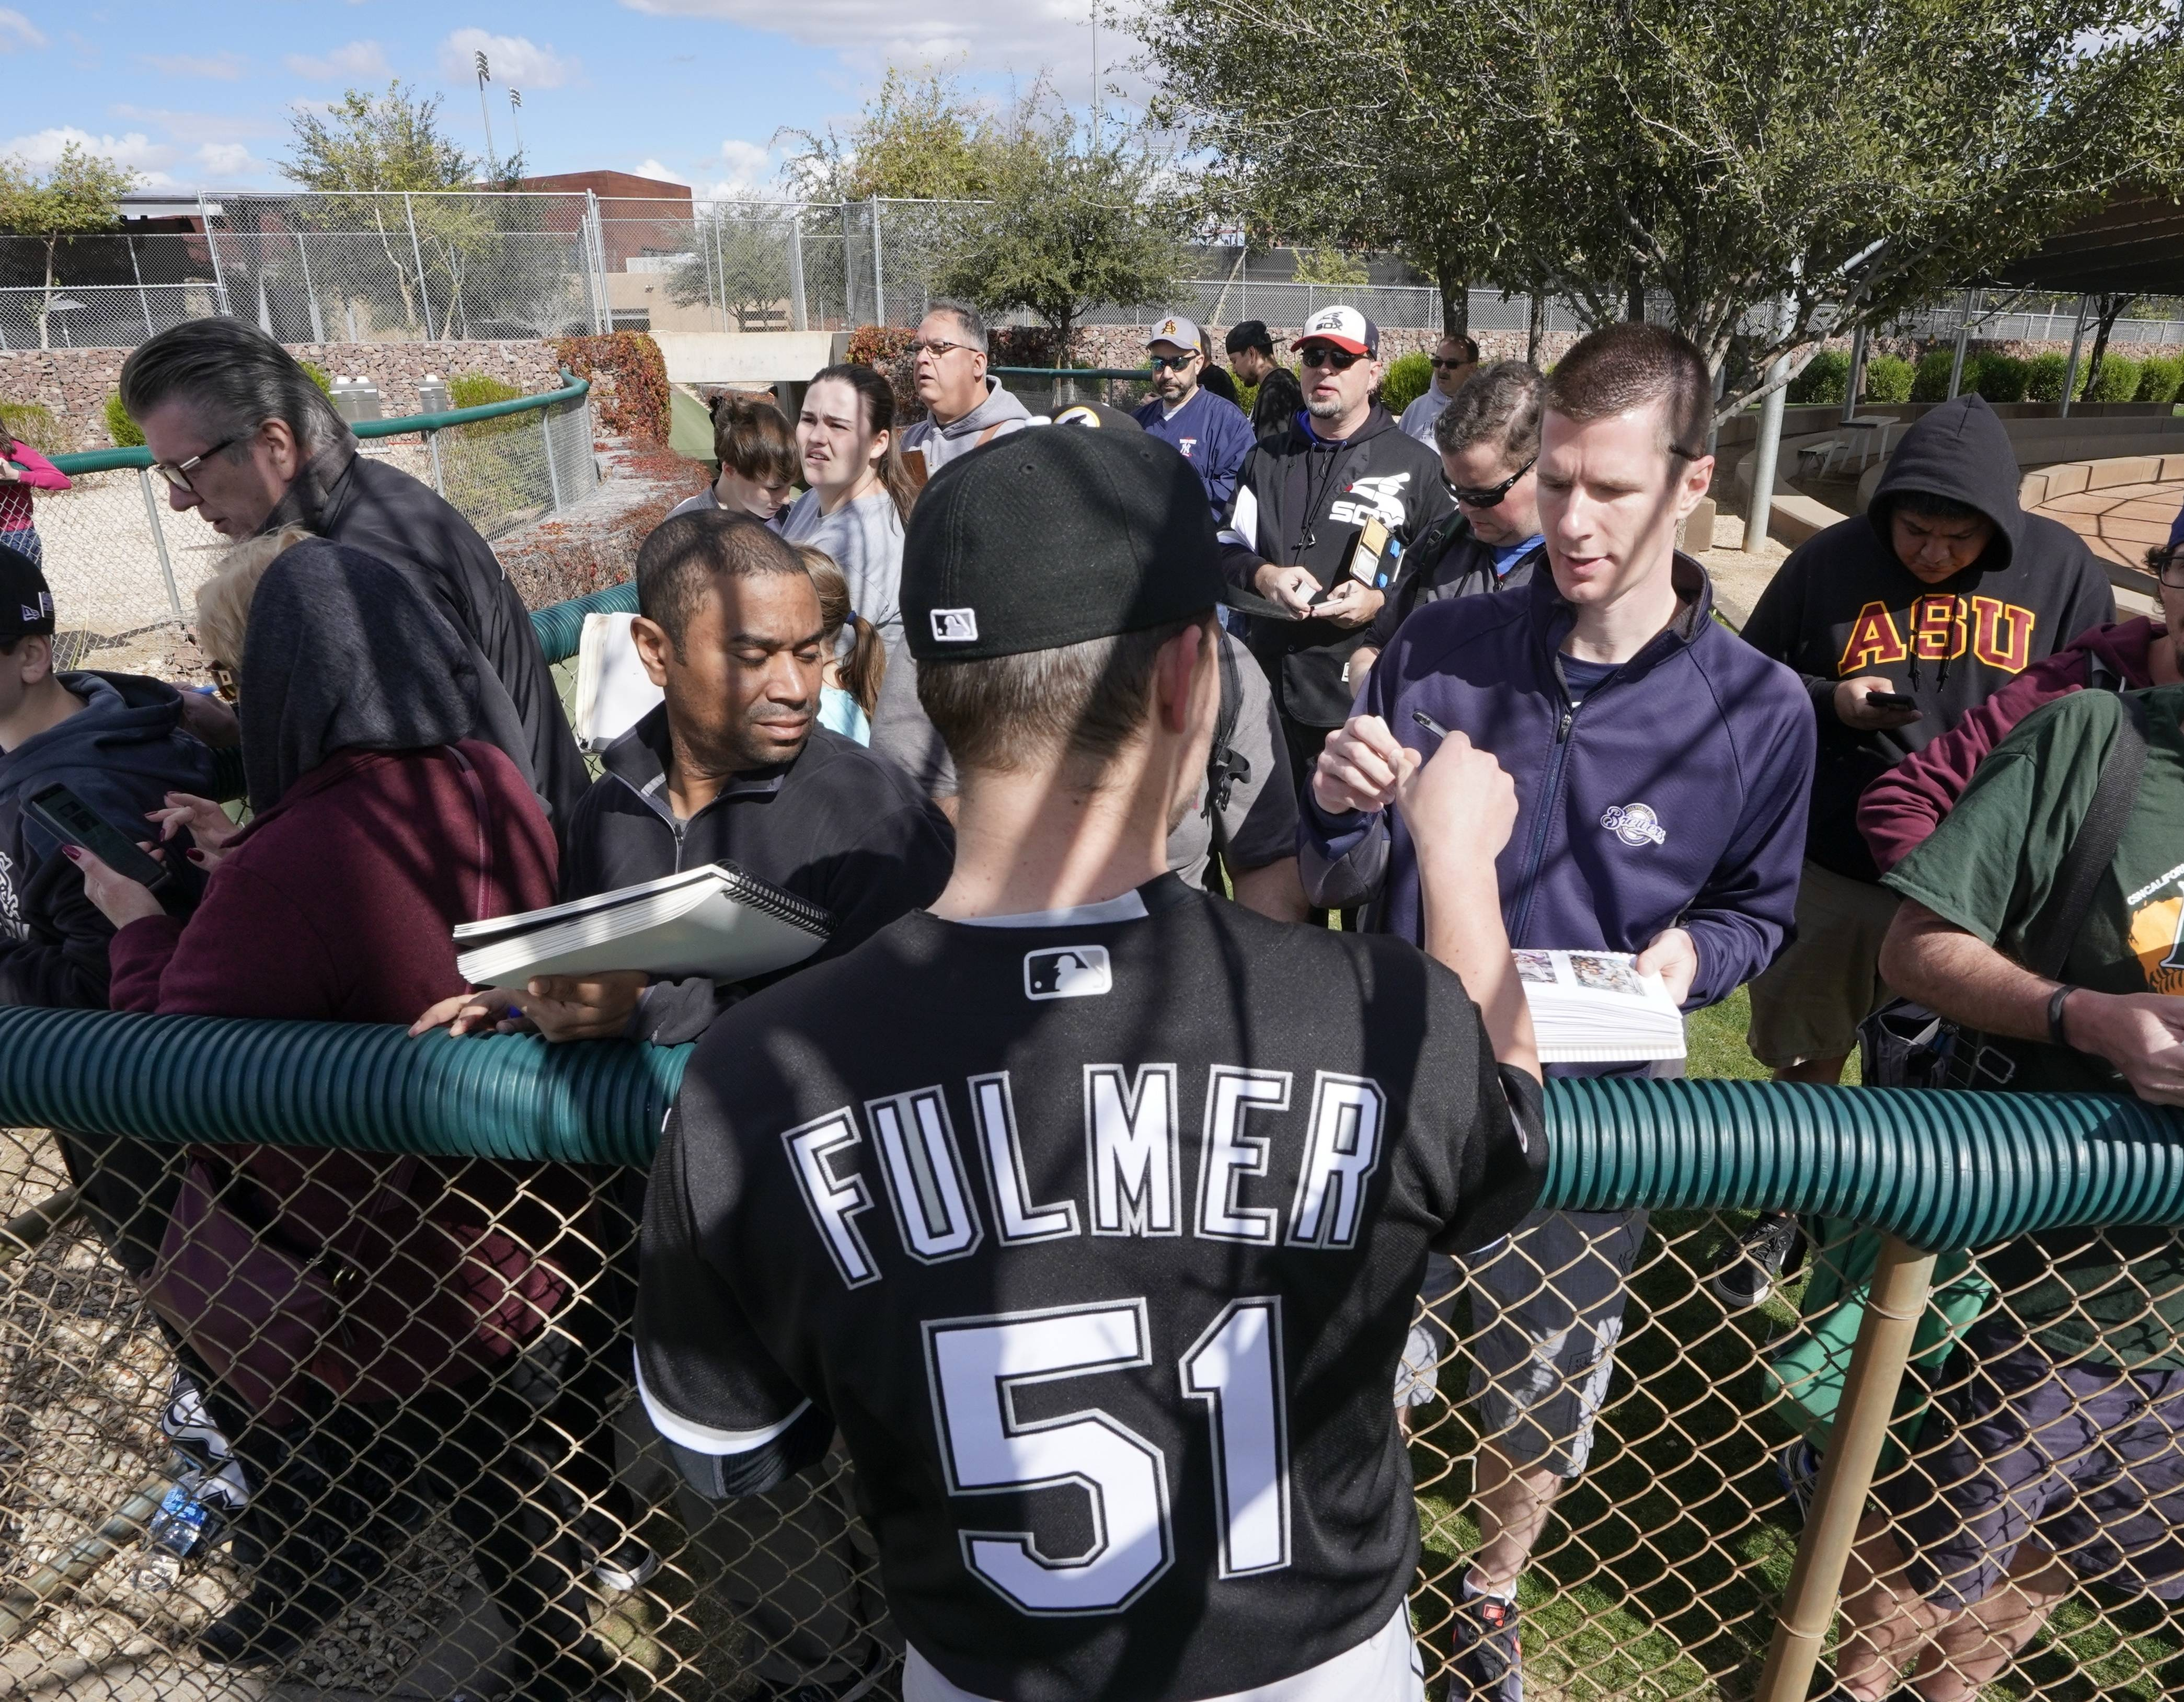 Chicago White Sox's Fulmer seeing 'massive results' after off-season of physical, mental training